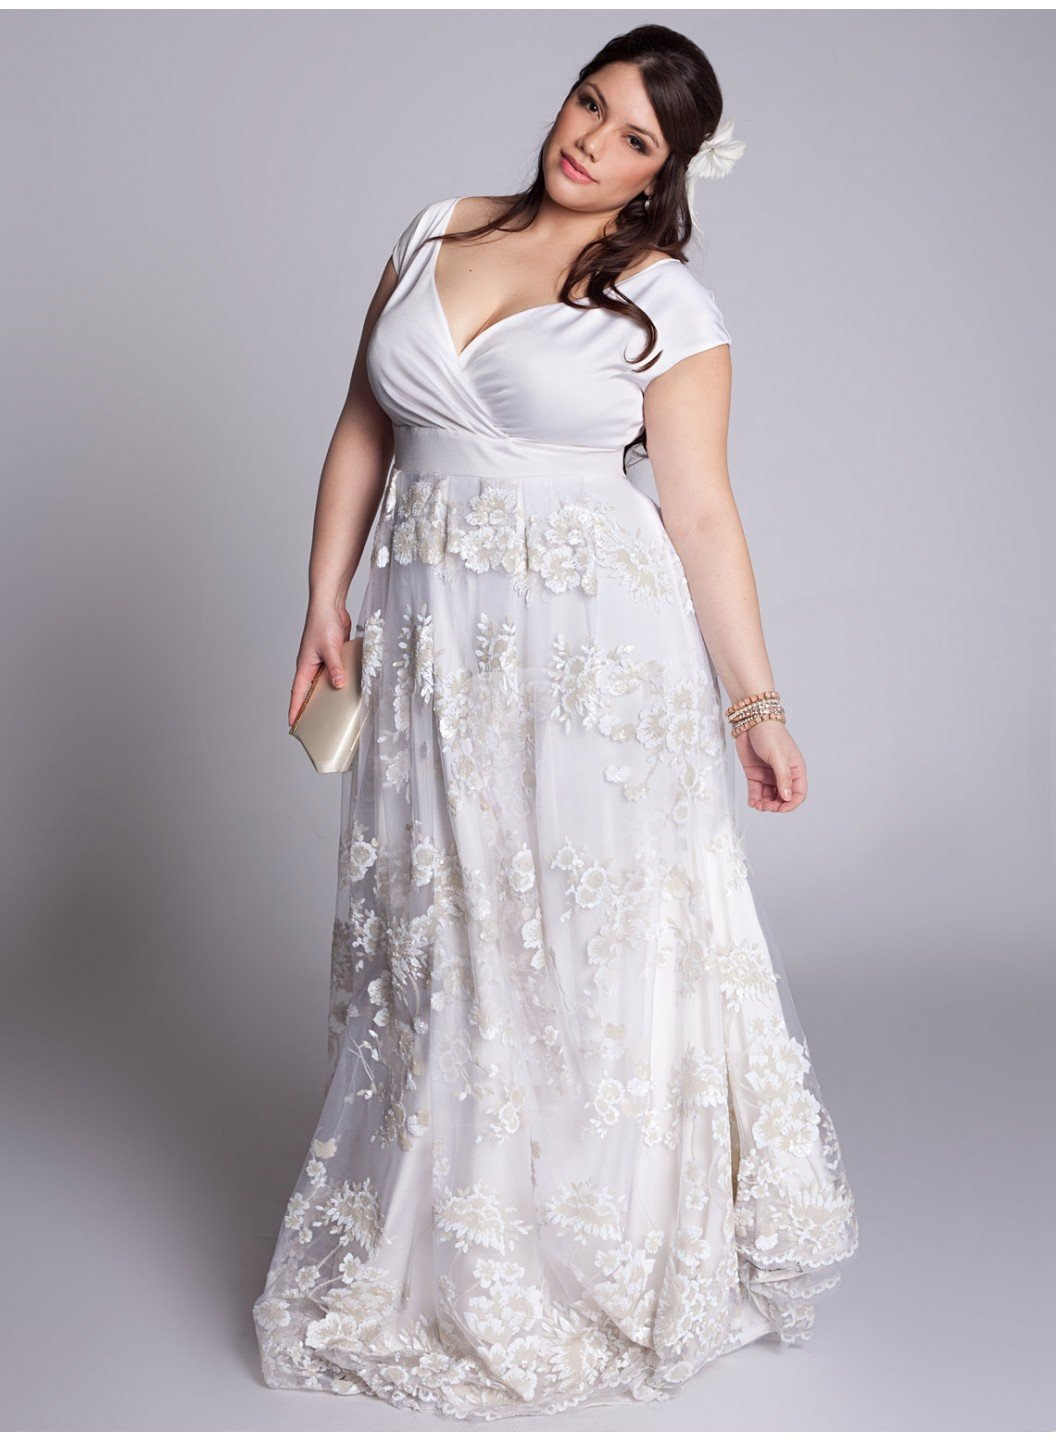 The Stylista Wedding Dresses For Any Body Shape The